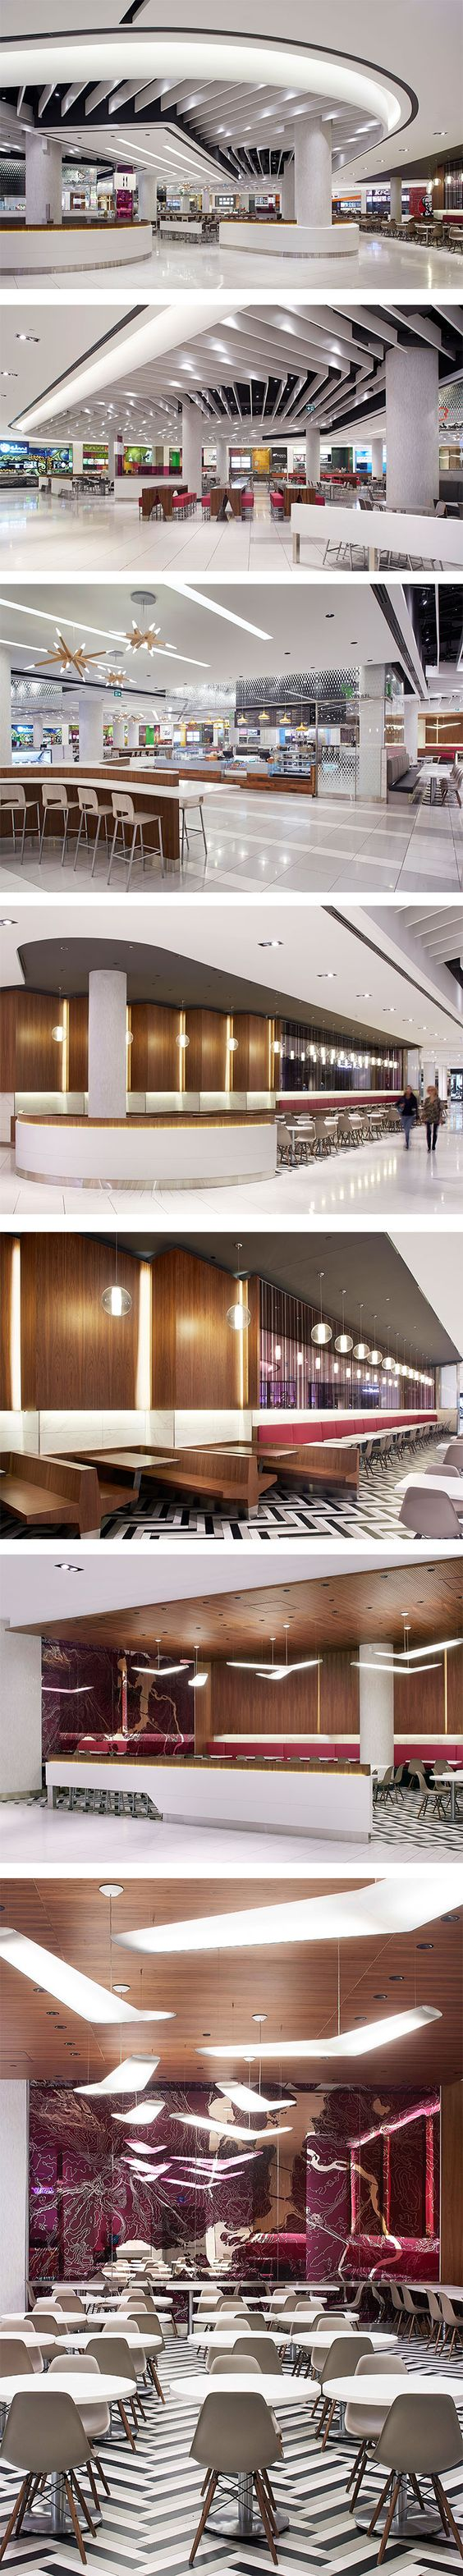 food court designs 22